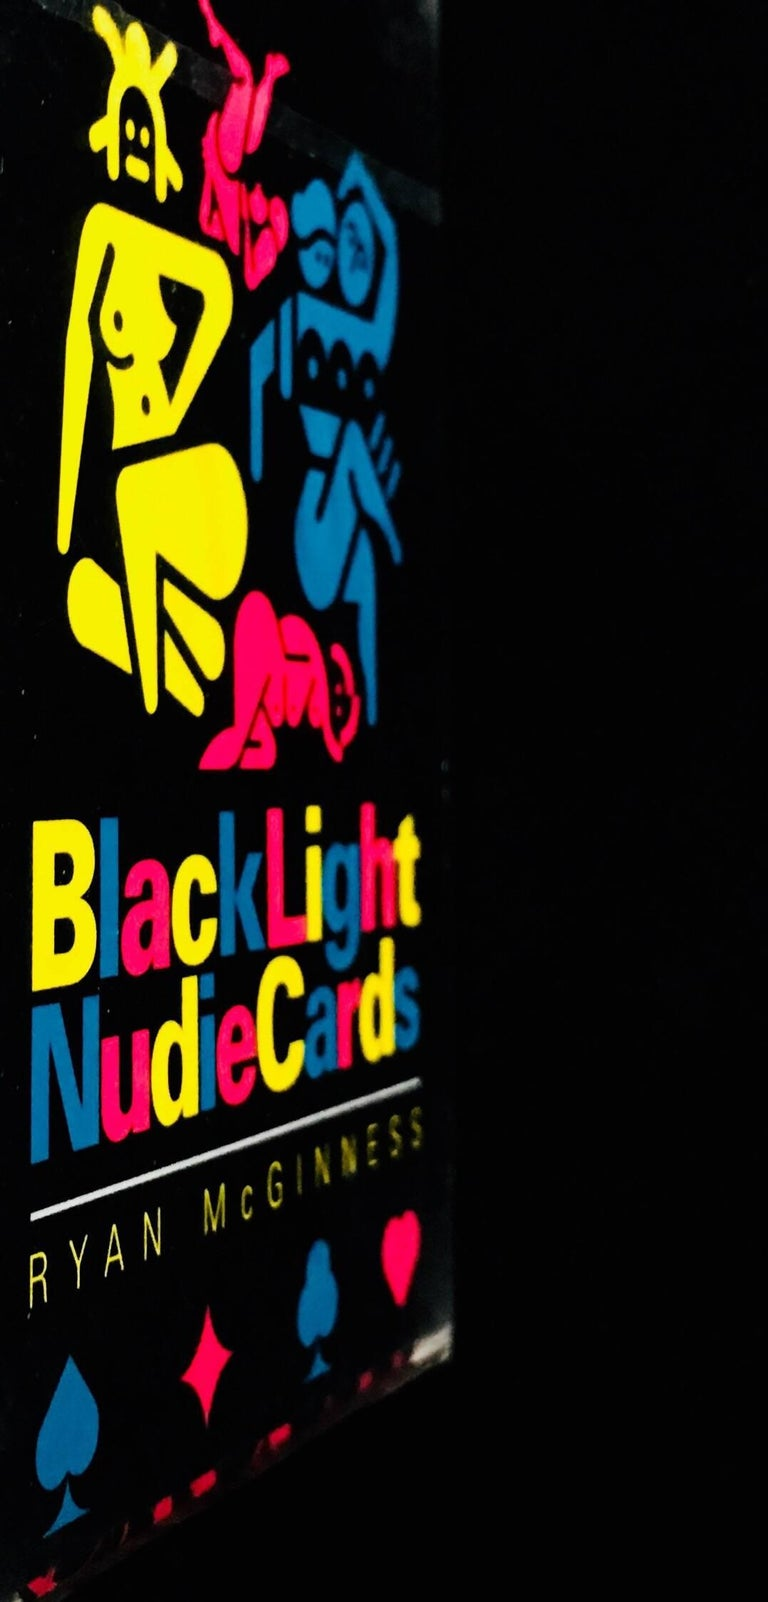 Ryan McGinness Blacklight Nudie Cards For Sale at 1stdibs